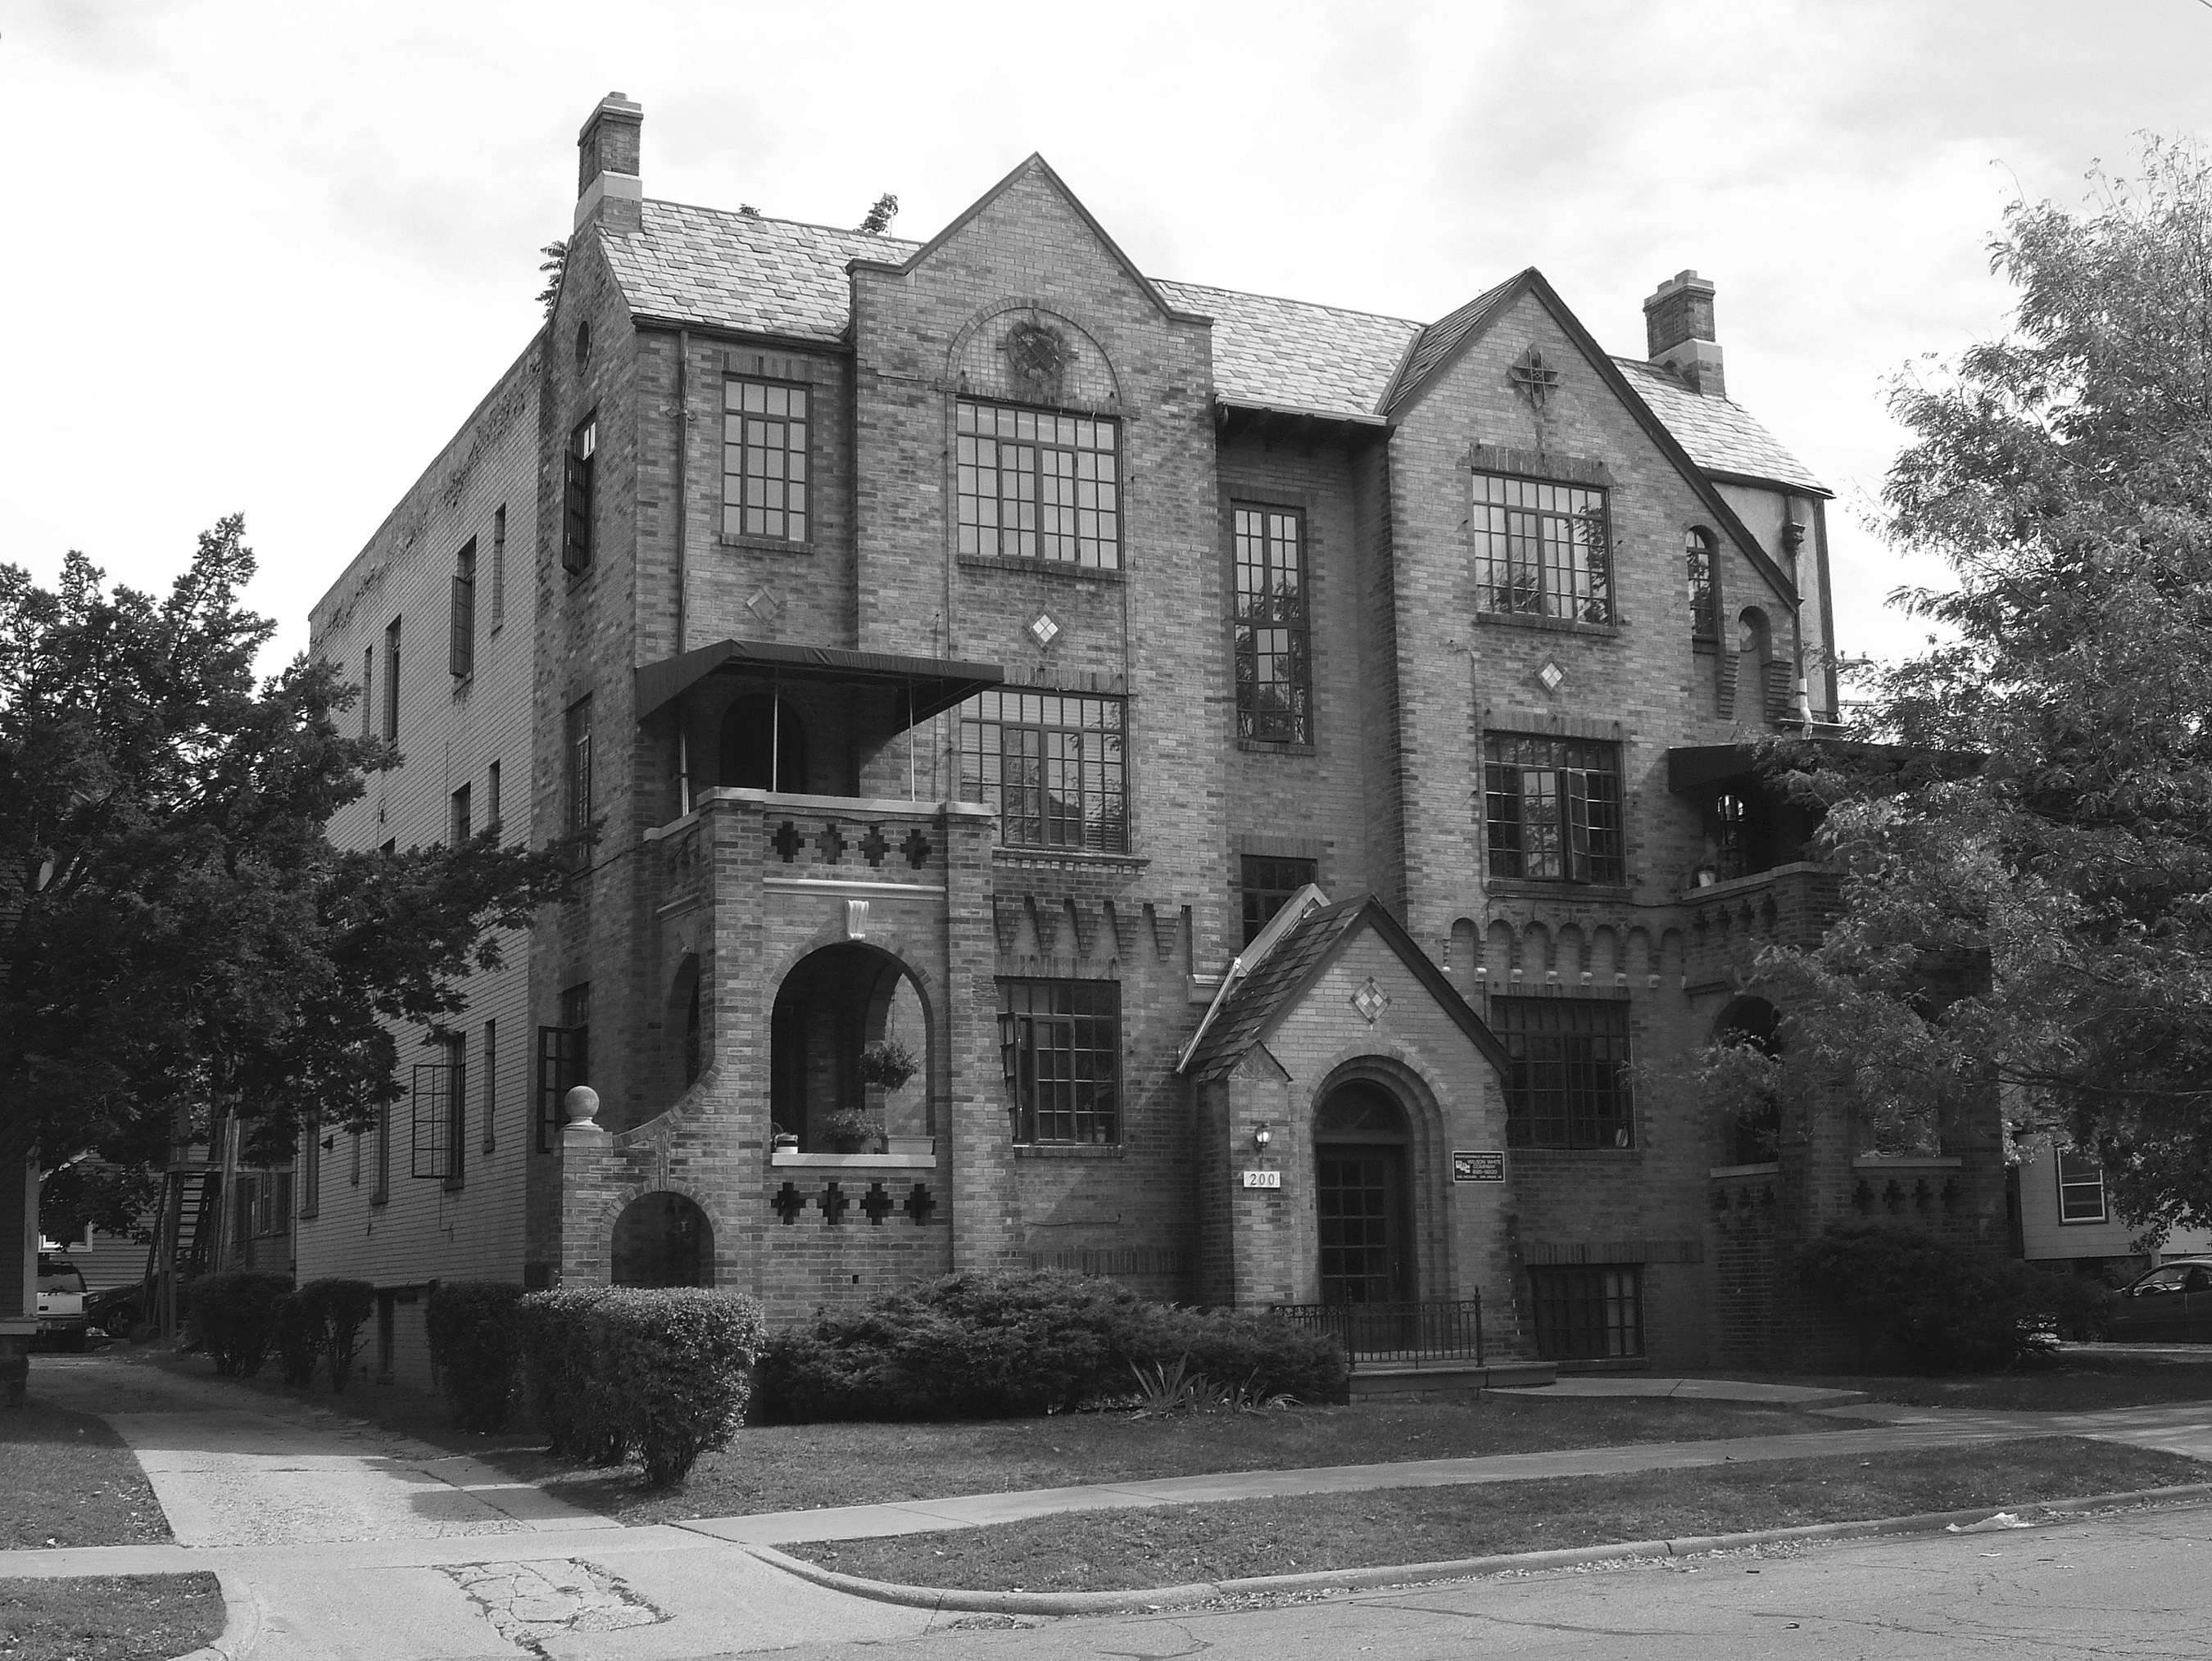 Wil-Dean apartment building, 2003 image